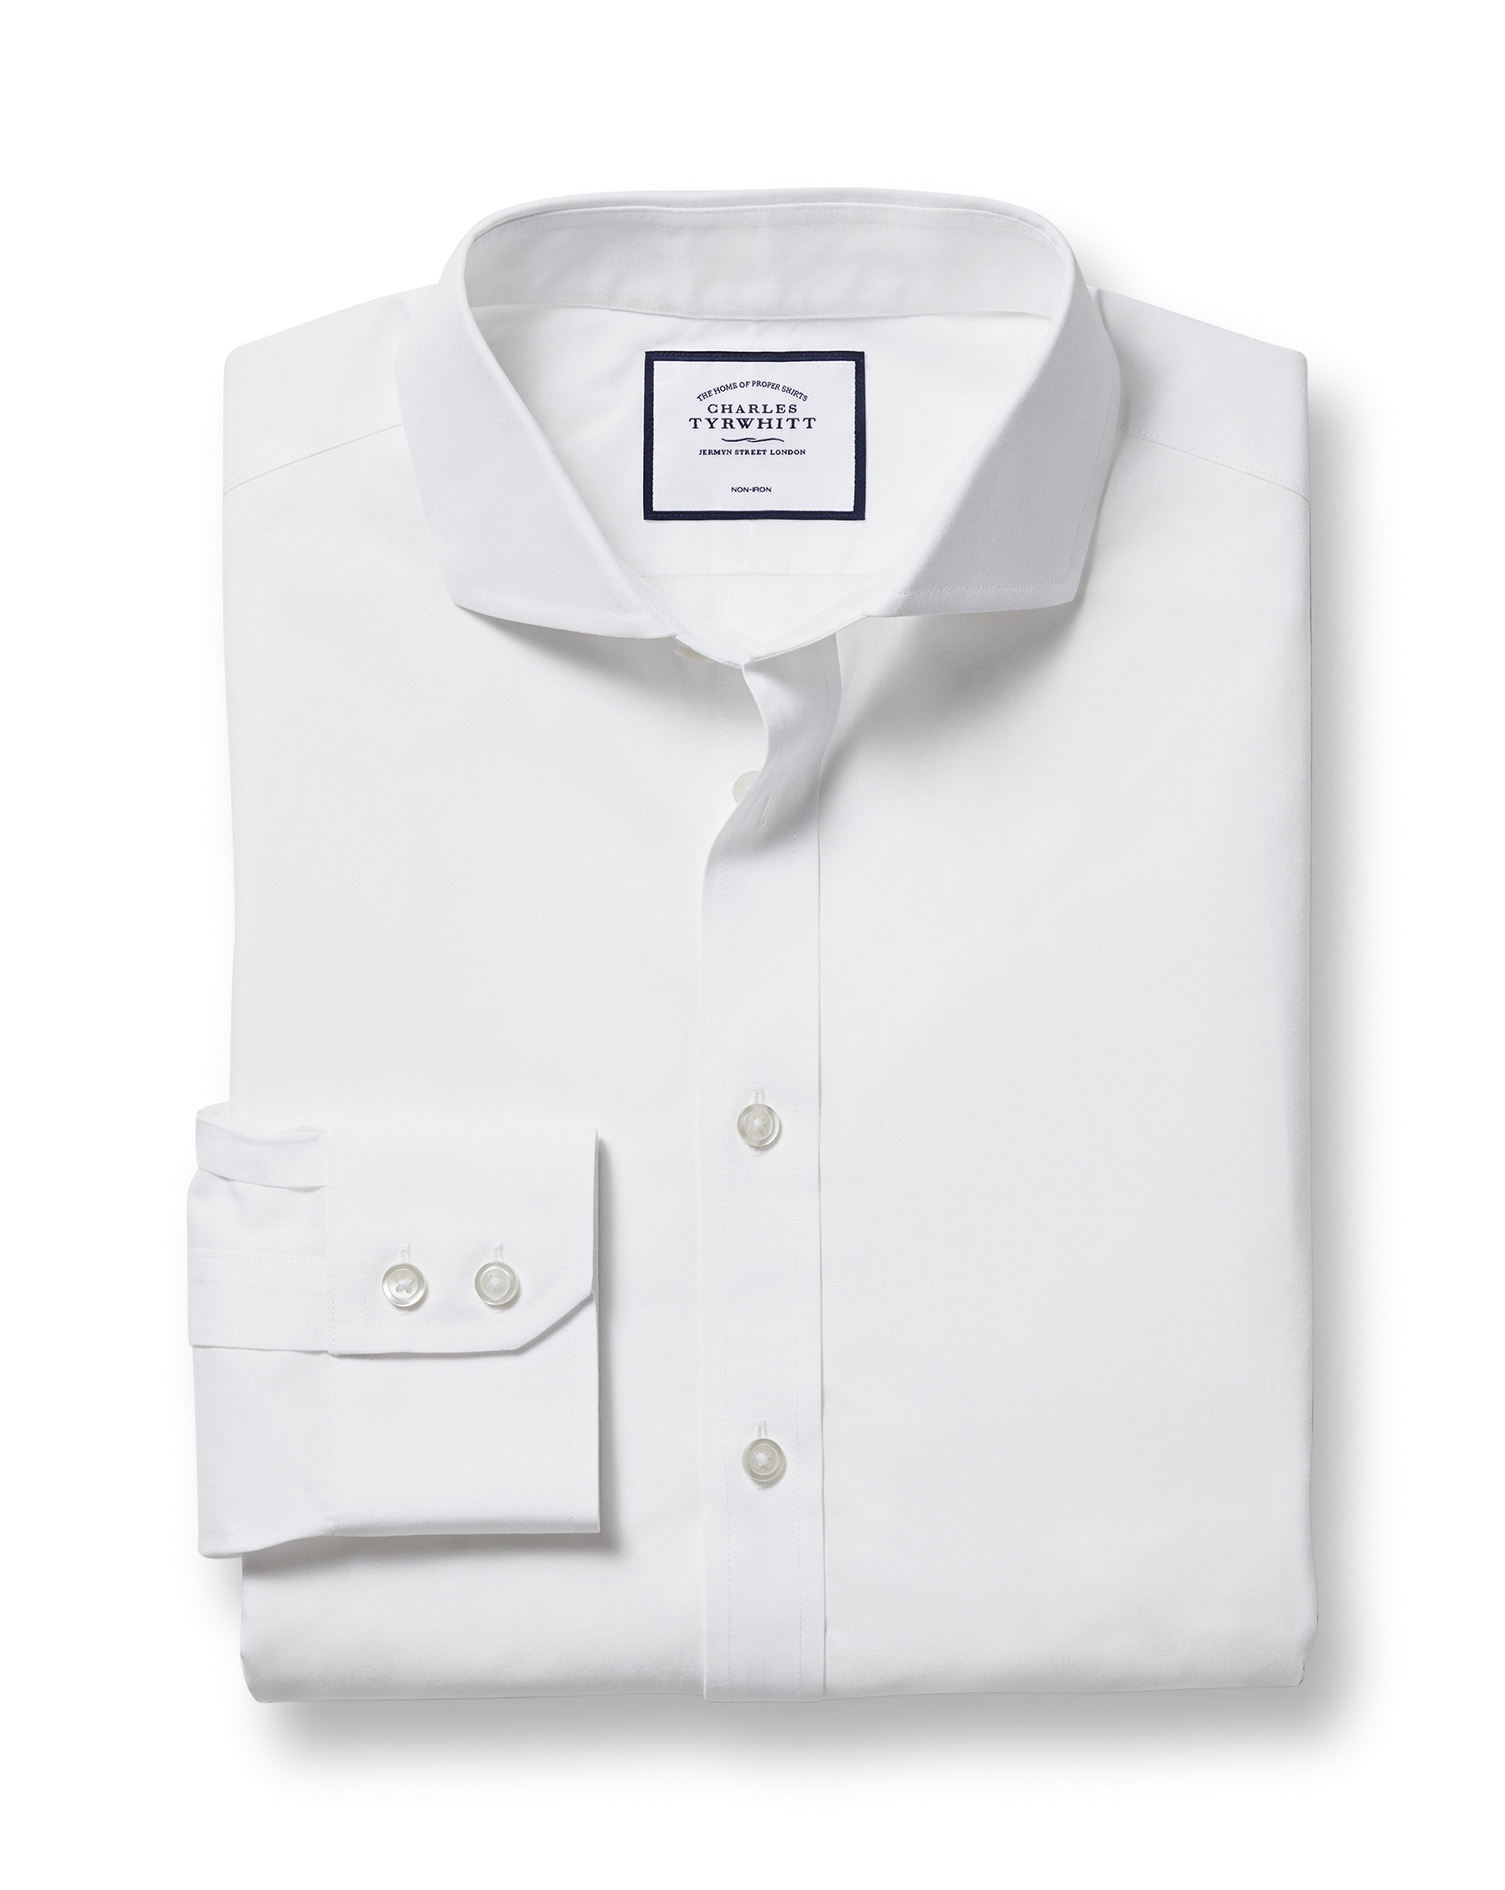 Slim Fit White Non-Iron Poplin Cutaway Collar Cotton Formal Shirt Double Cuff Size 16/33 by Charles